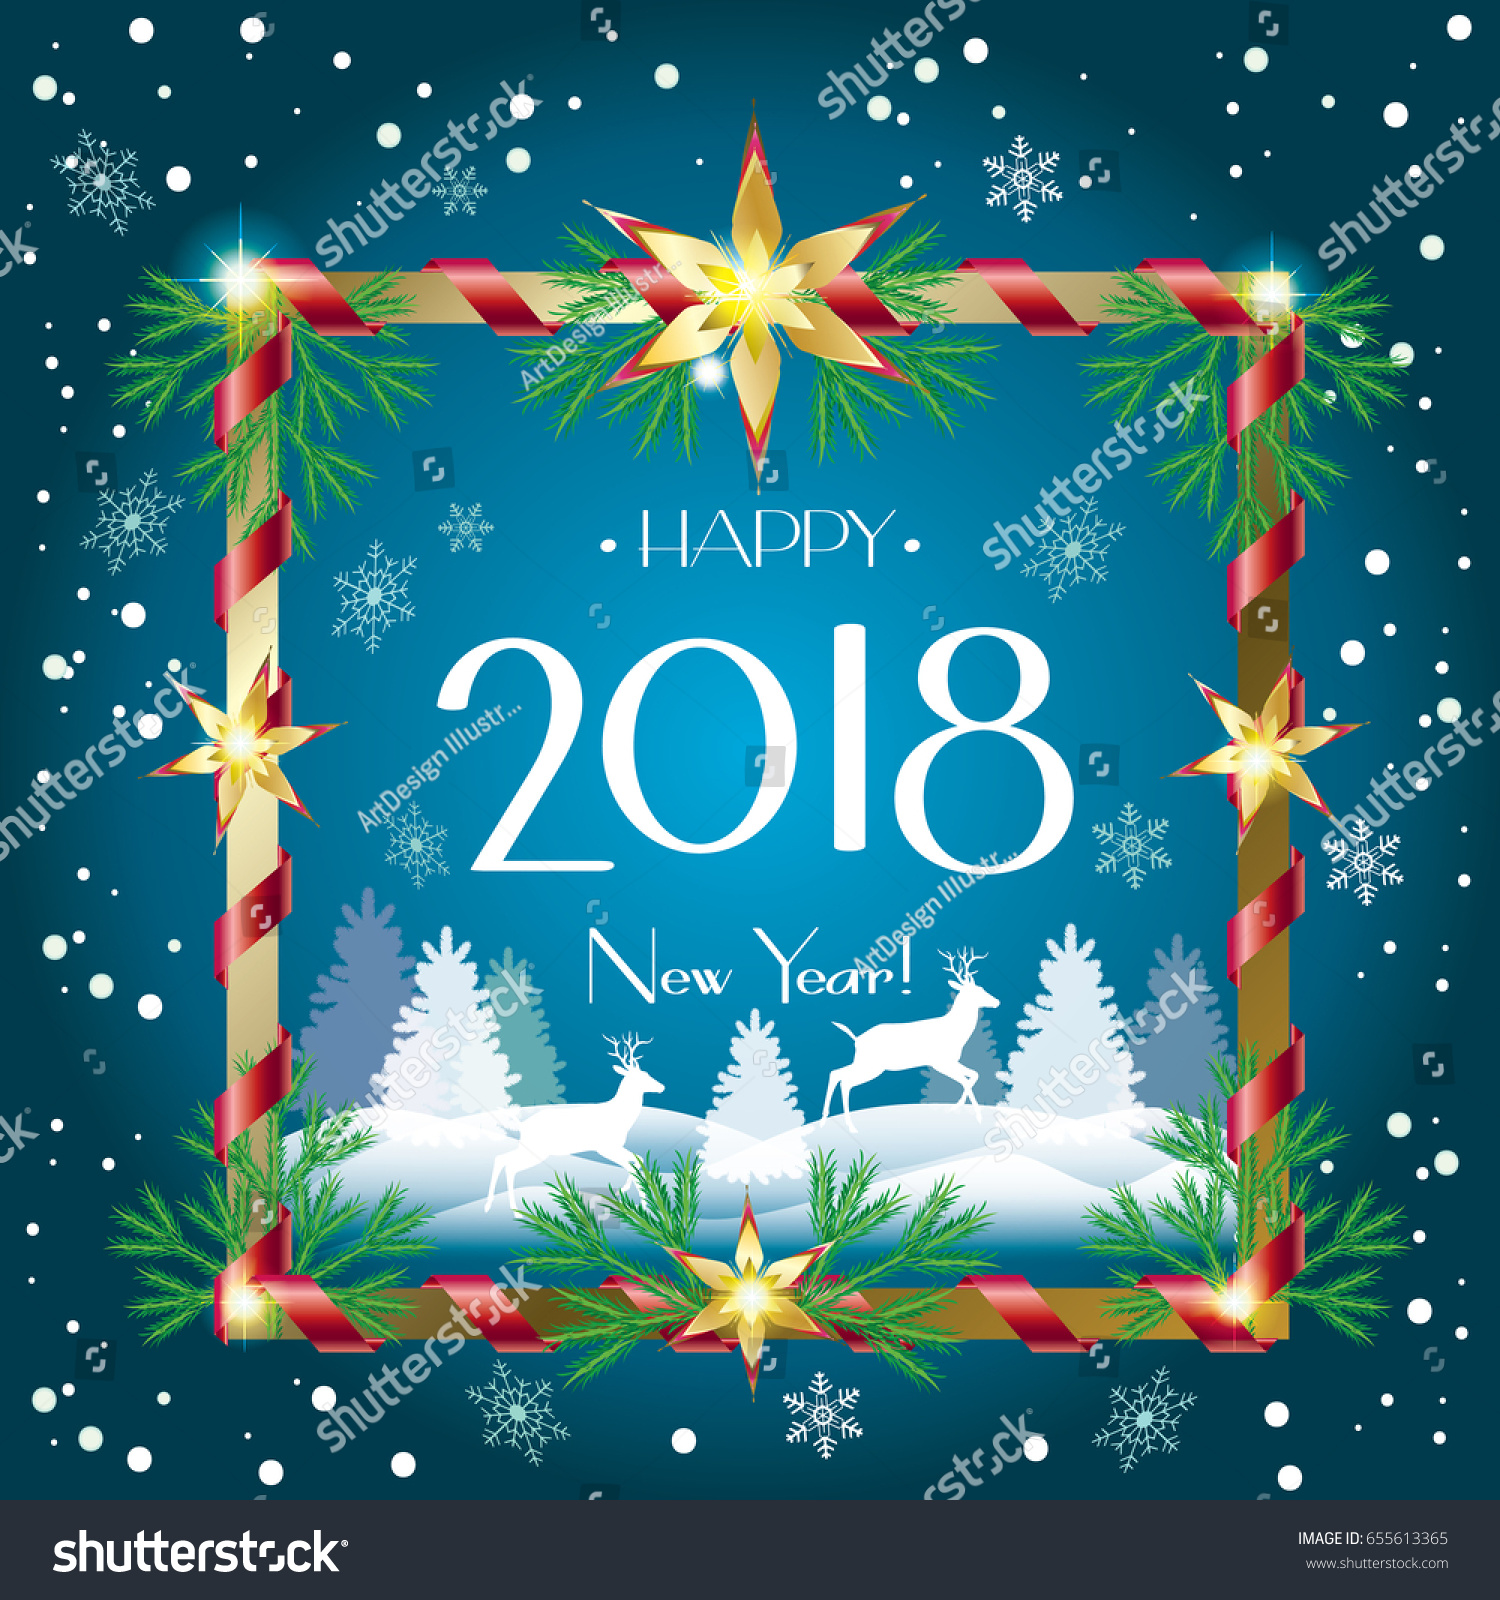 merry christmas and happy new year greeting card with falling snow sparkle reindeer